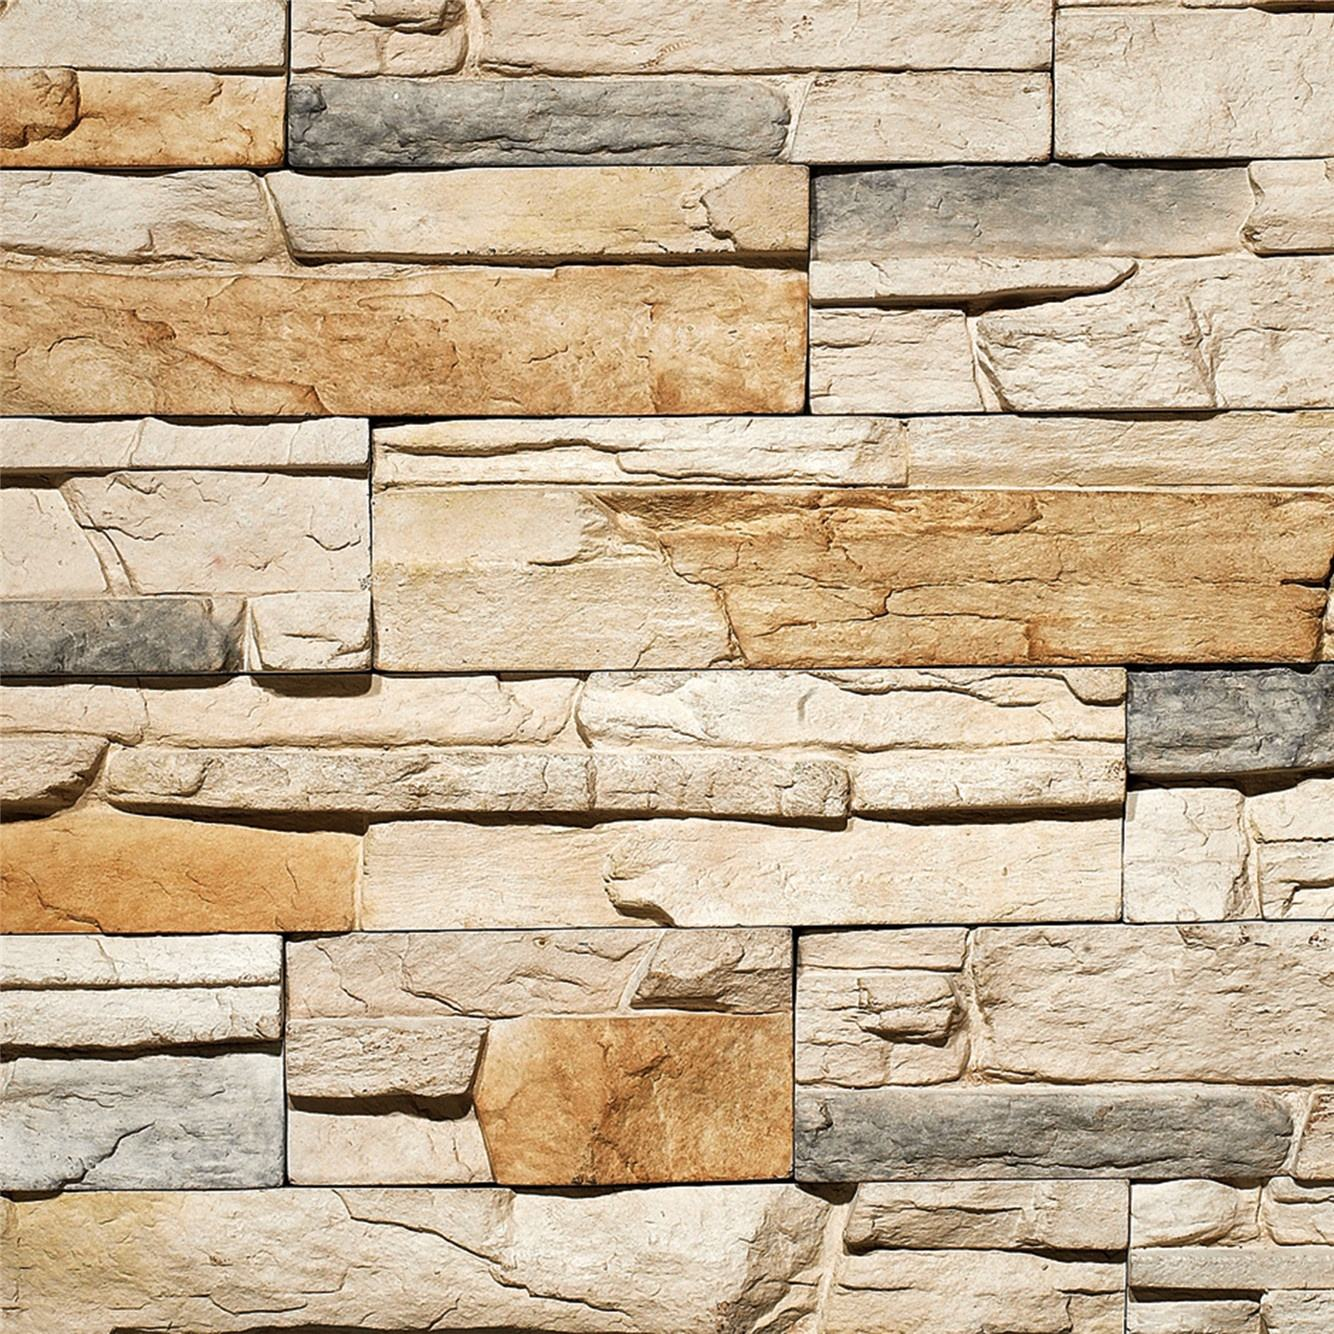 Artificial Culture Stone AS-NA15 Exterior Decorative Wall Panels